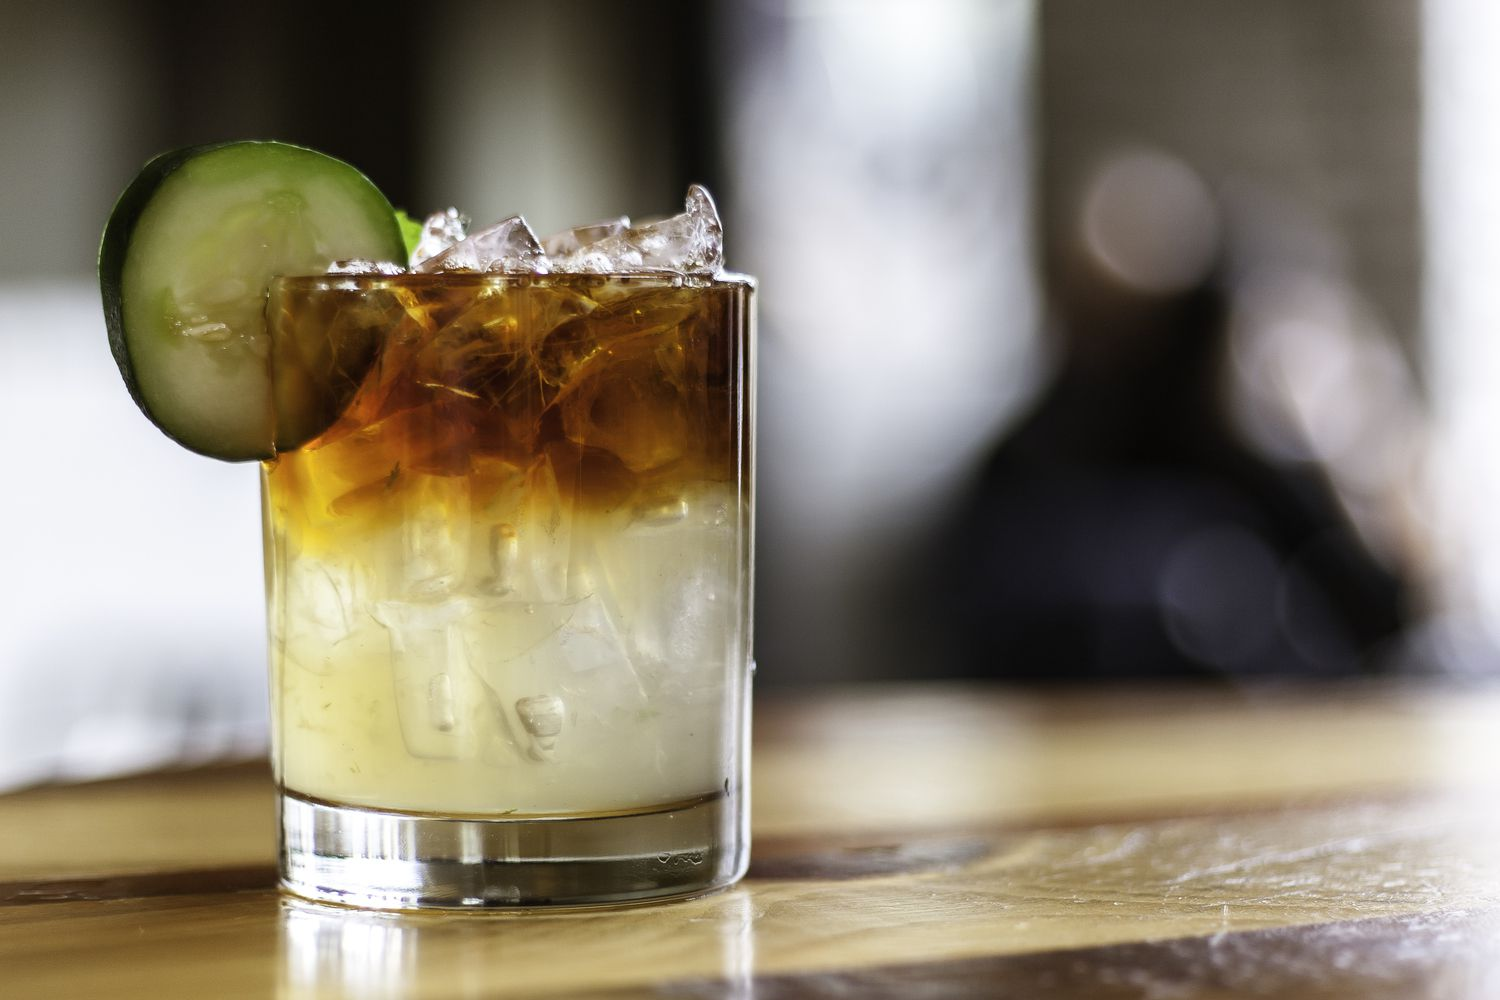 Glass with ice, lime juice at the bottom and a mix of Espolon Blanco tequila and Aperol with a cucumber garnish